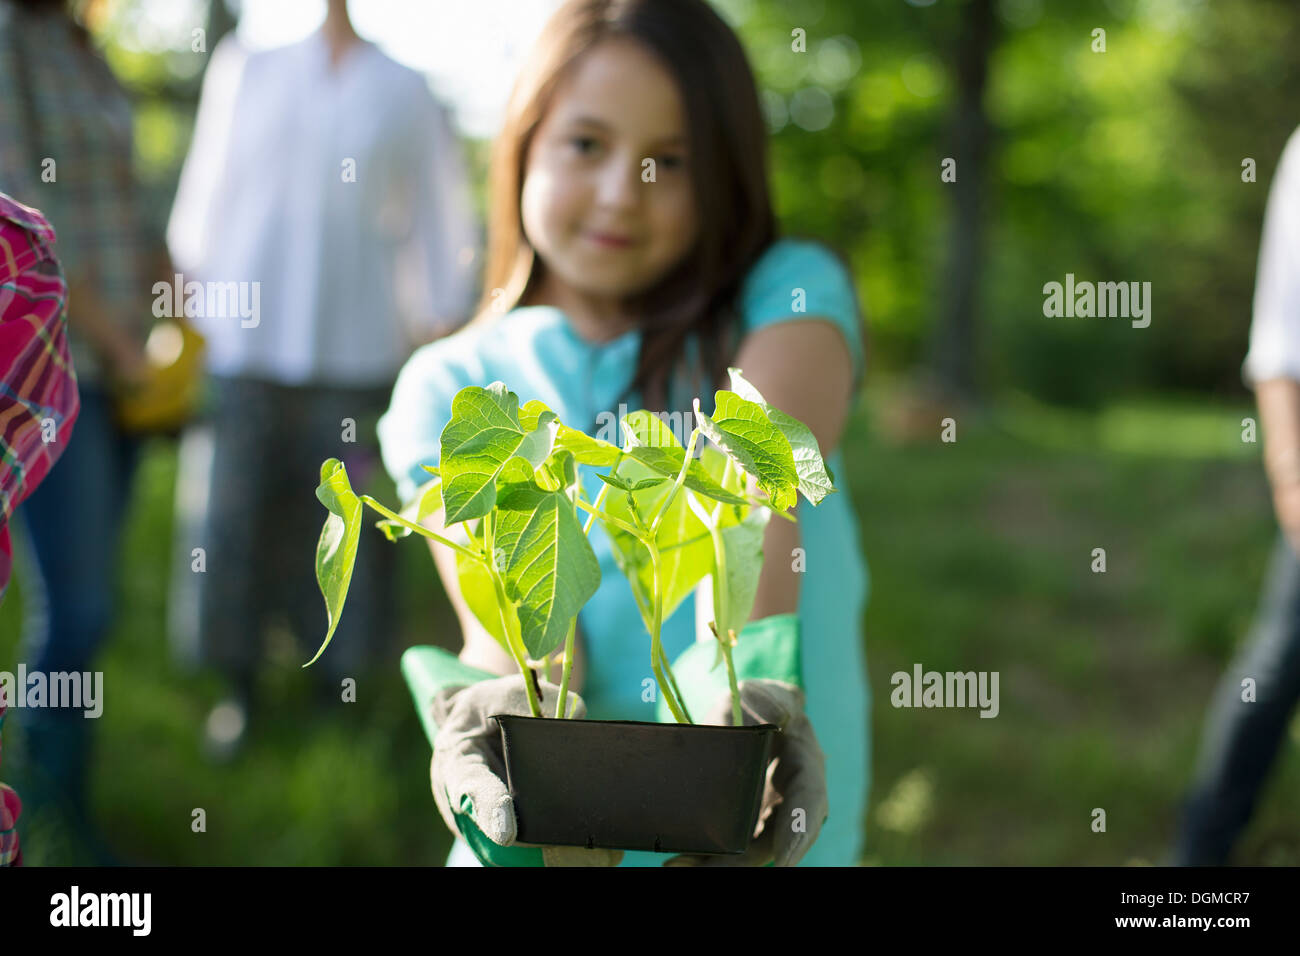 Organic farm. Summer party. A young girl holding out a tray of seedling plants. - Stock Image